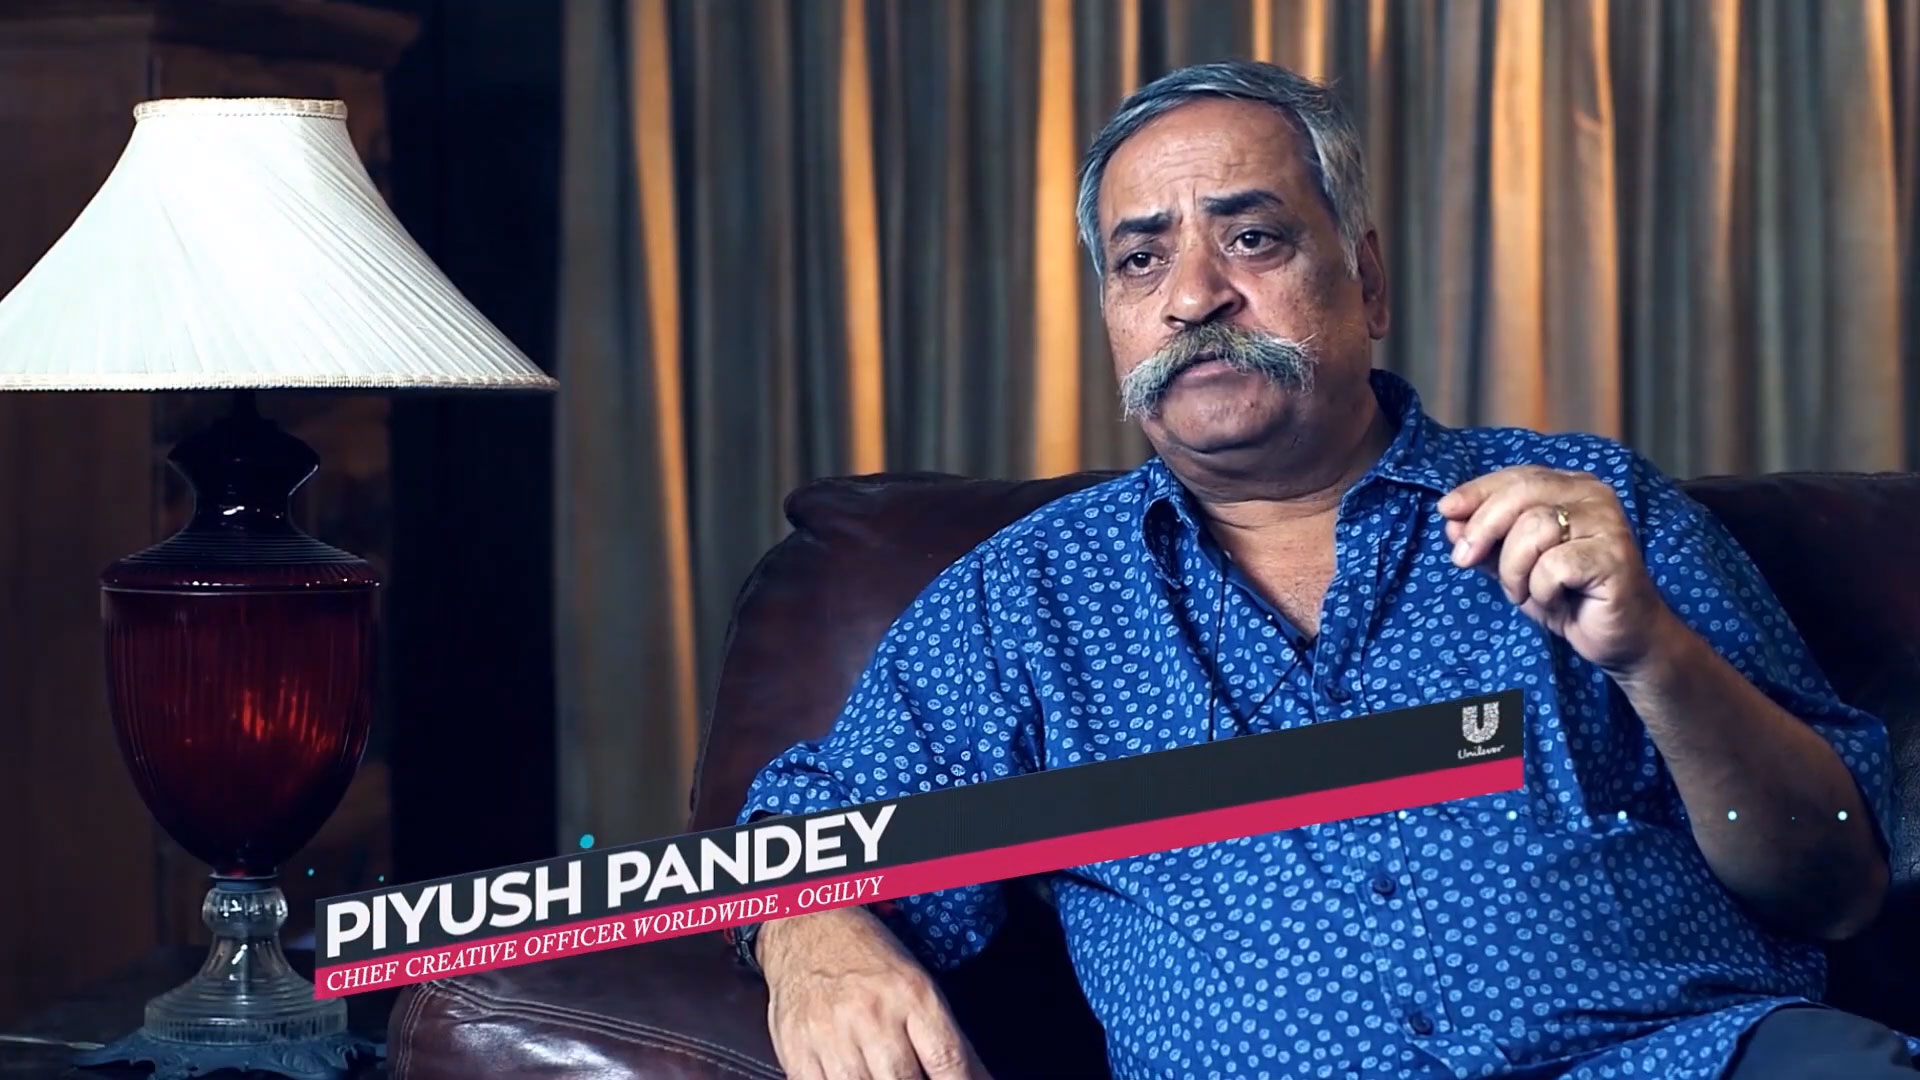 Piyush Pandey Chief Creative Officer worldwide, Ogilvy